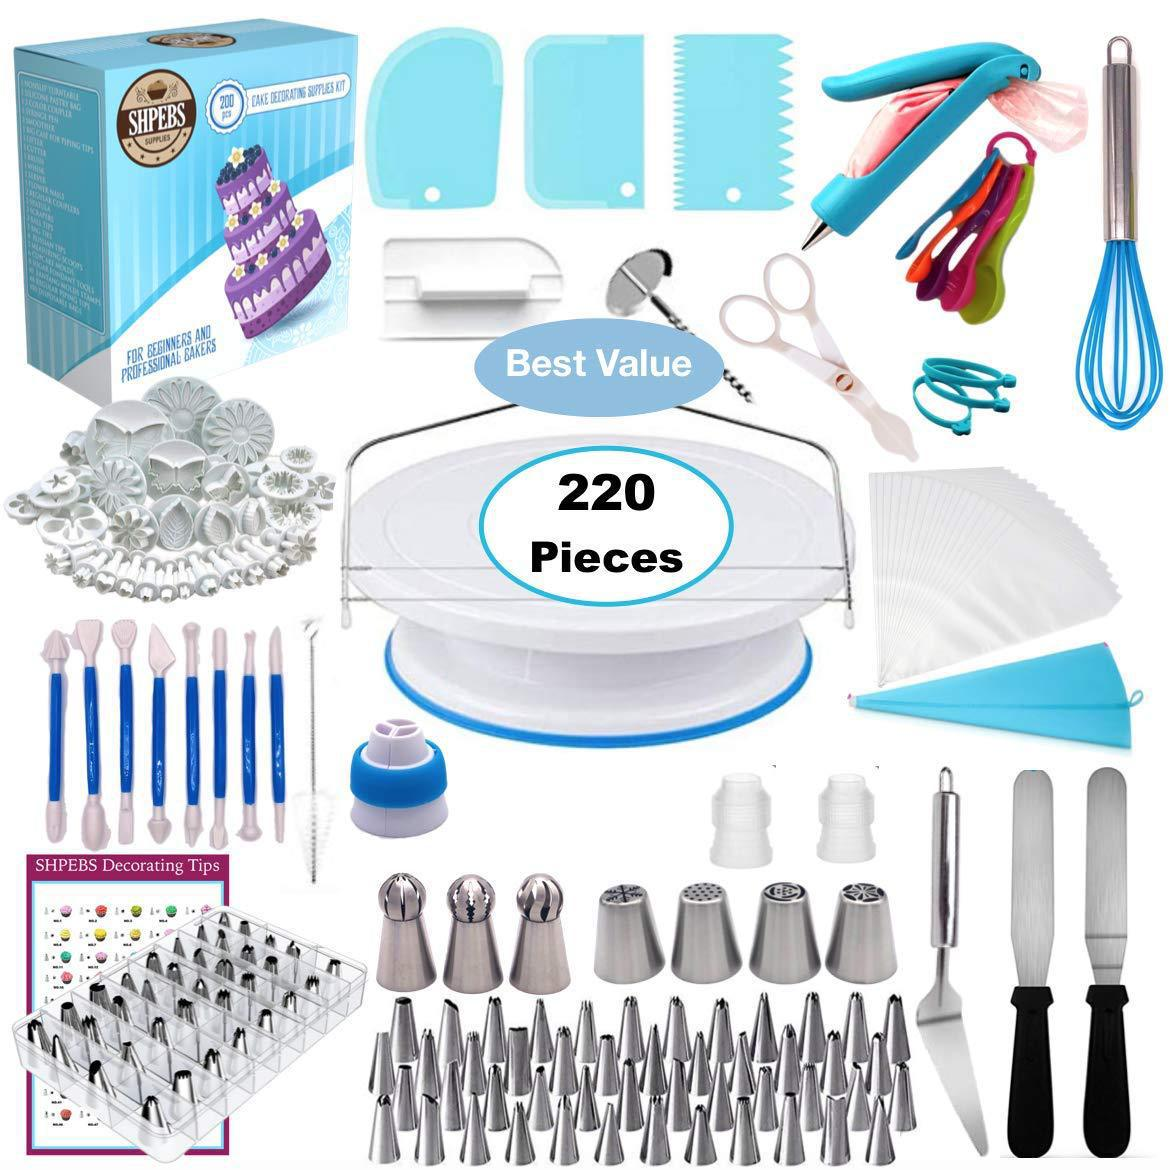 220pcs Simple Patisserie Cake Decorating Tools Edible Pen Stainless Steel Spatula Cake Mold Pasteleria Home Decoration Ec50hb